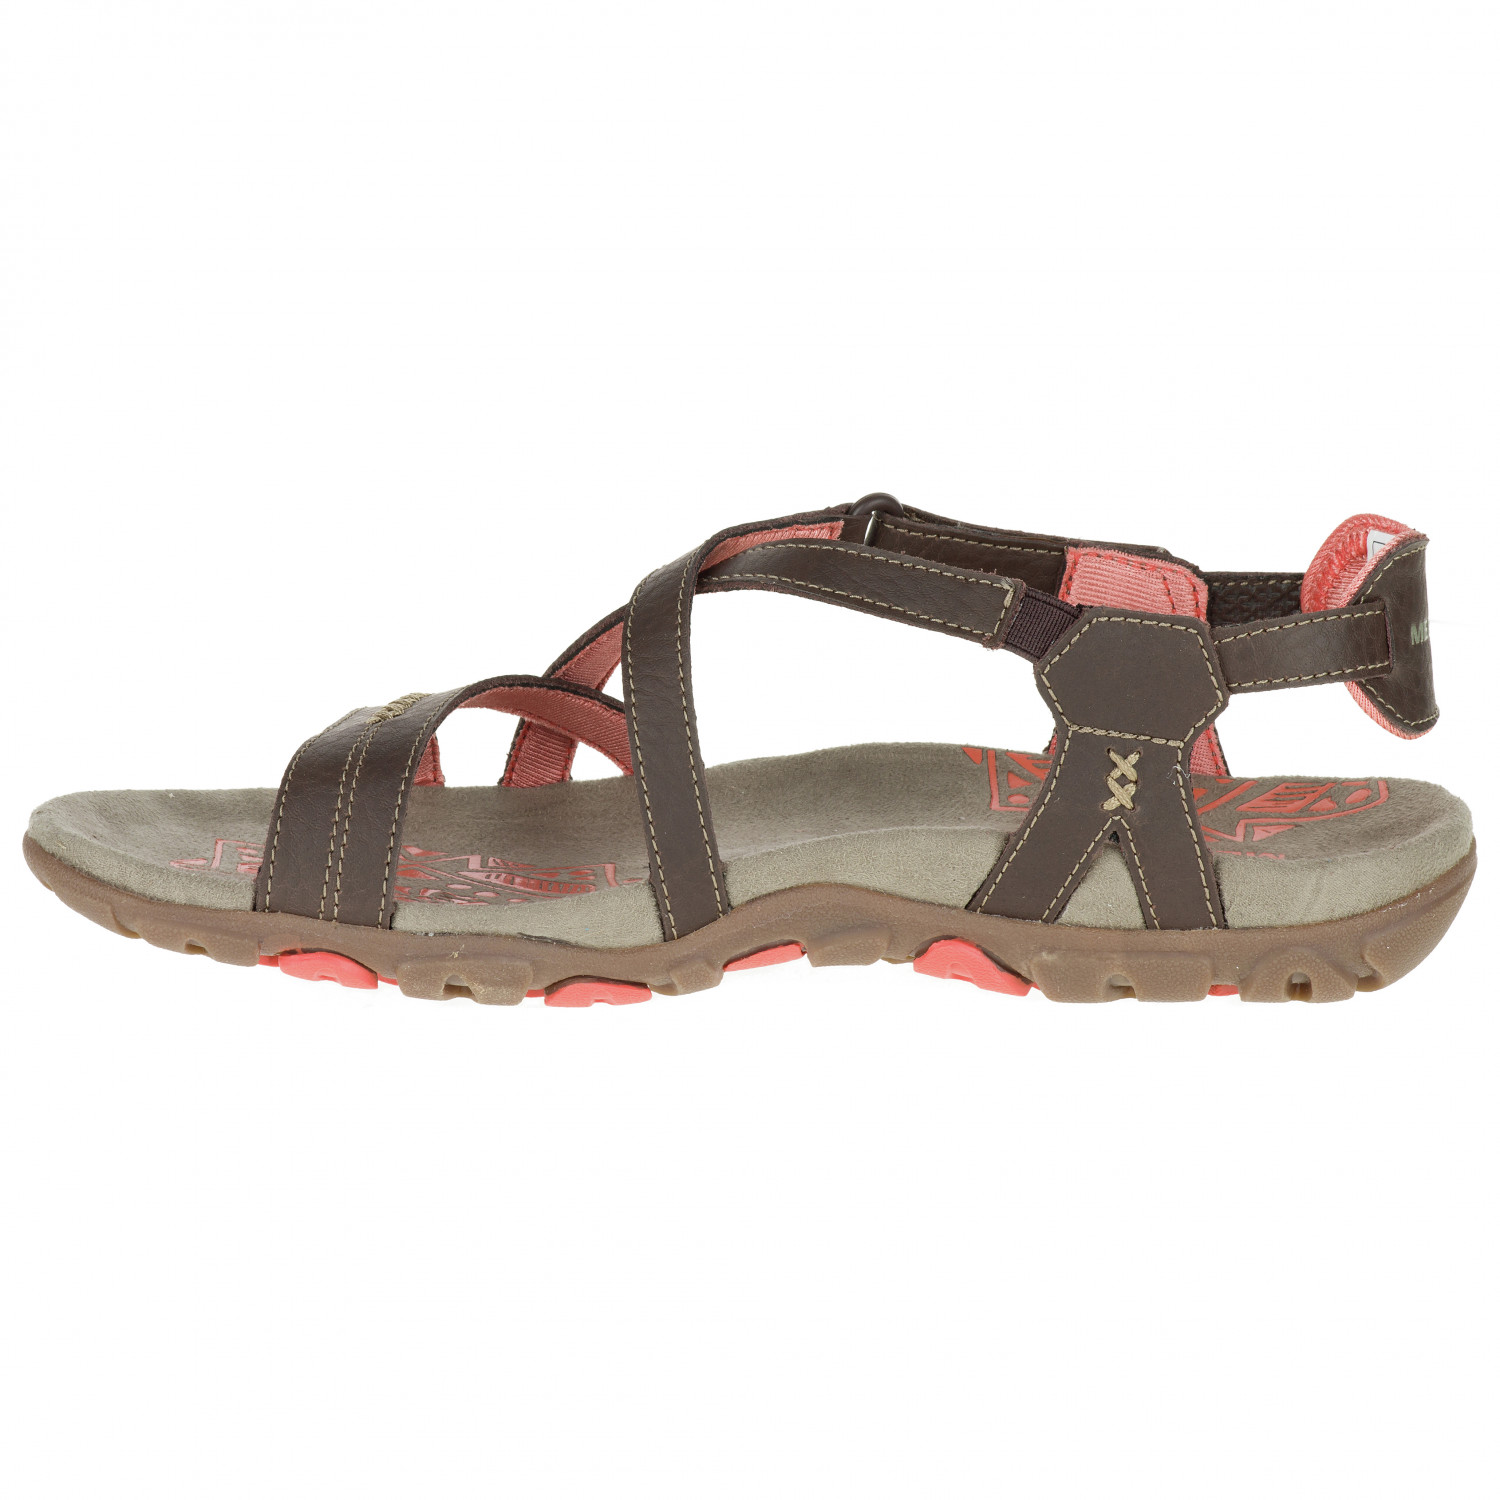 7a970da97689 ... Merrell - Women s Sandspur Rose Leather - Sandals ...